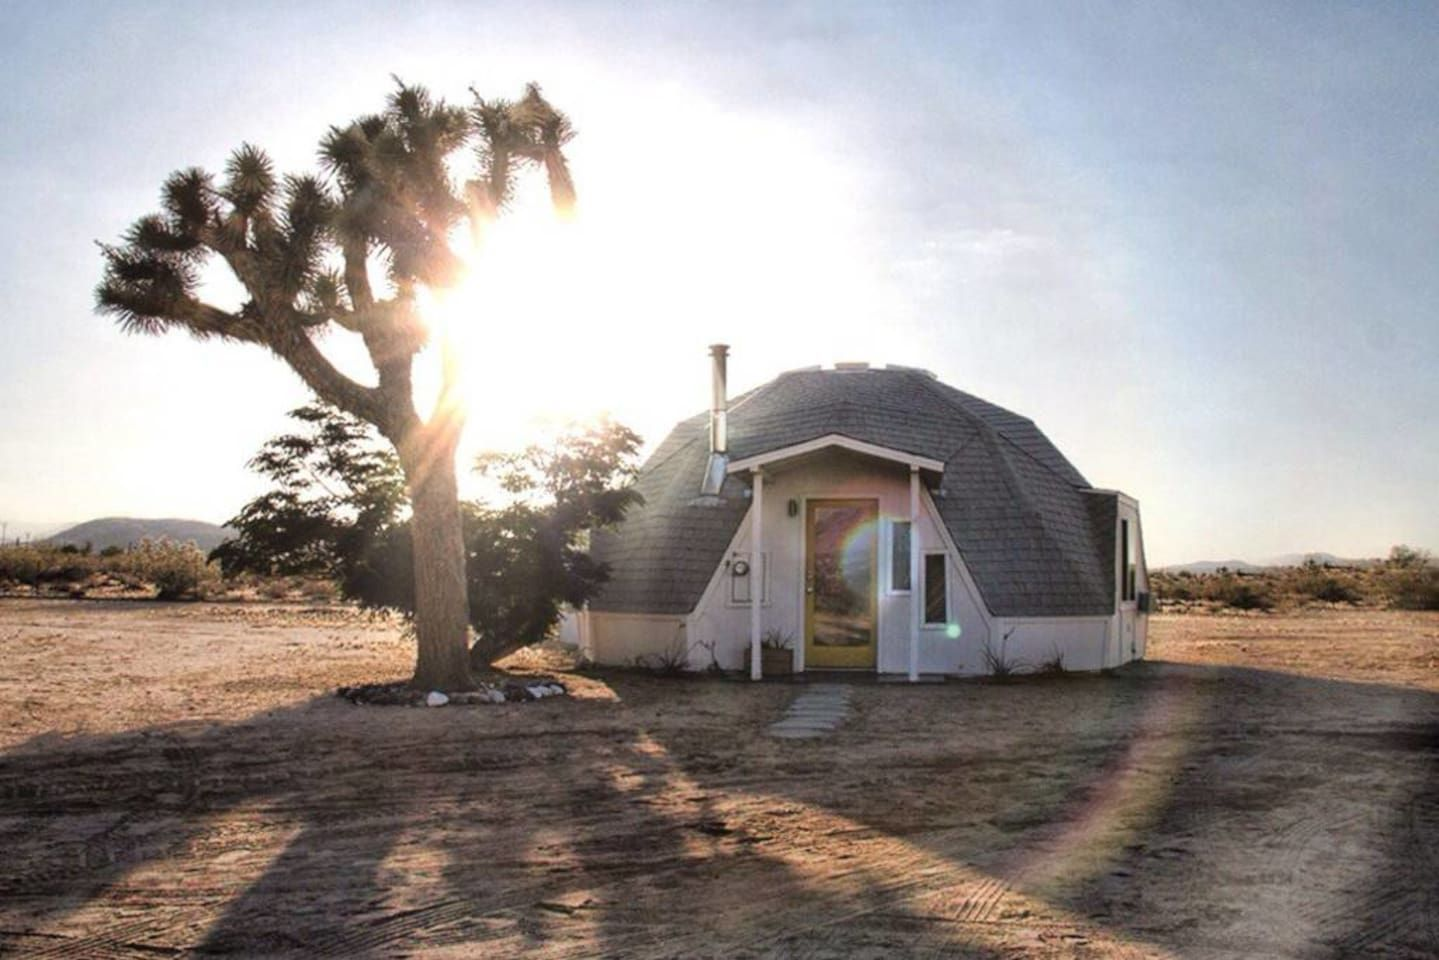 """House in Joshua Tree, United States. Secluded geodesic dome house in Joshua Tree.  Instagram: @domeinthedesert  If the Dome in the Desert is unavailable, please check out our other Joshua Tree Airbnb listing, """"Cabin Cabin Cabin in Joshua Tree"""" at https://www.airbnb.com/rooms/7303044.... - Get $25 credit with Airbnb if you sign up with this link http://www.airbnb.com/c/groberts22"""